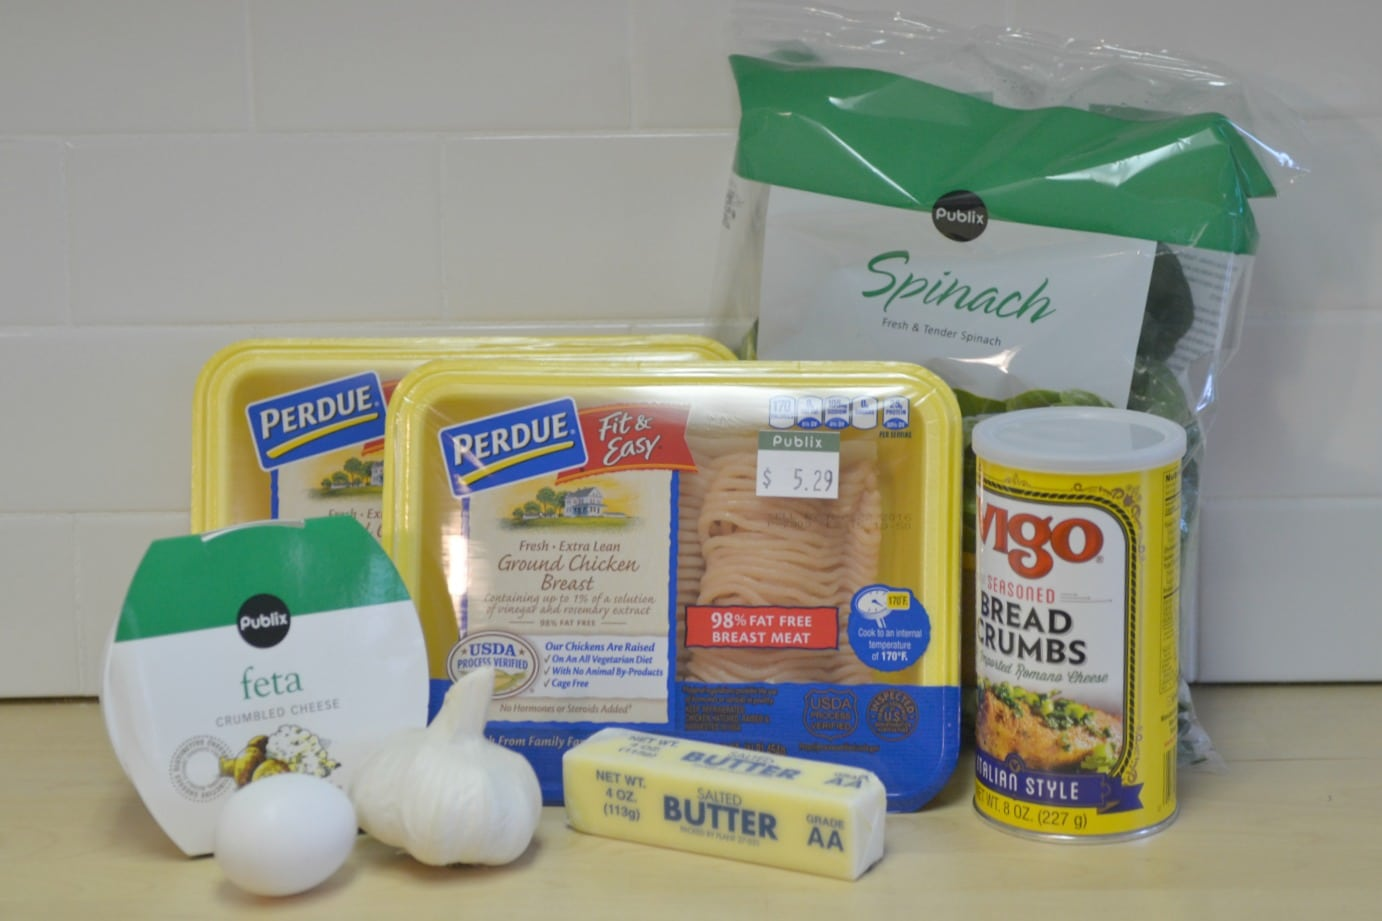 Assemble your ingredients: feta, garlic, egg, butter, breadcrumbs, spinach and ground turkey.